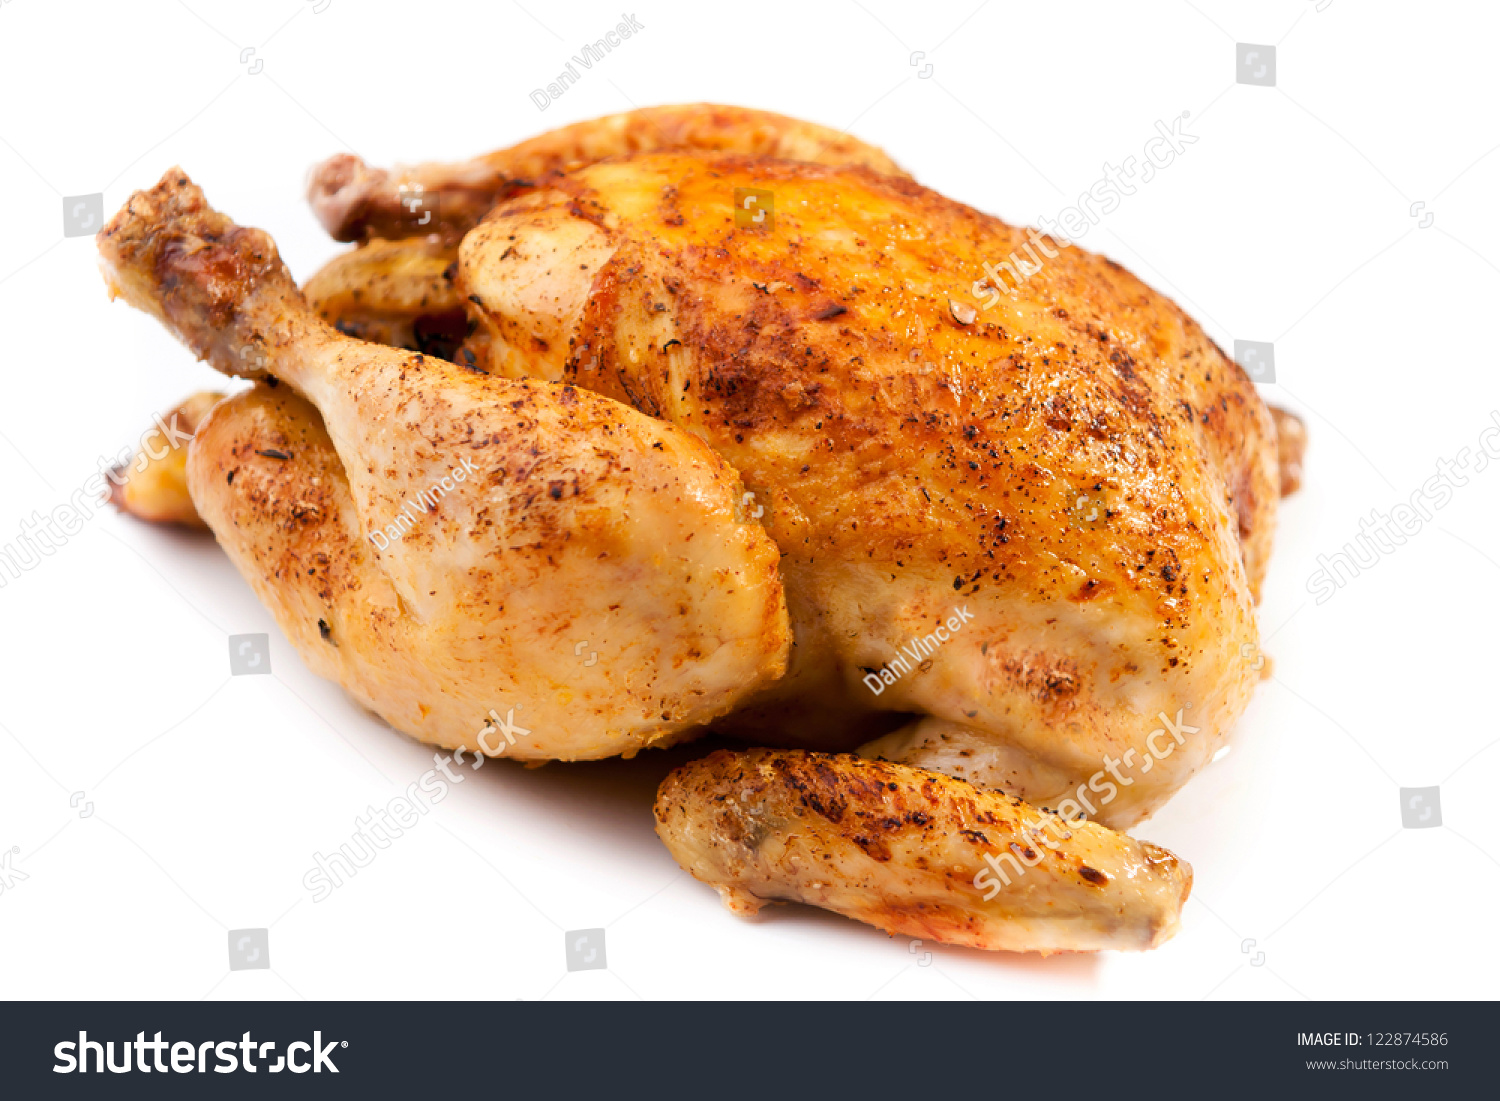 Roast Chicken Stock Photo 122874586 : Shutterstock